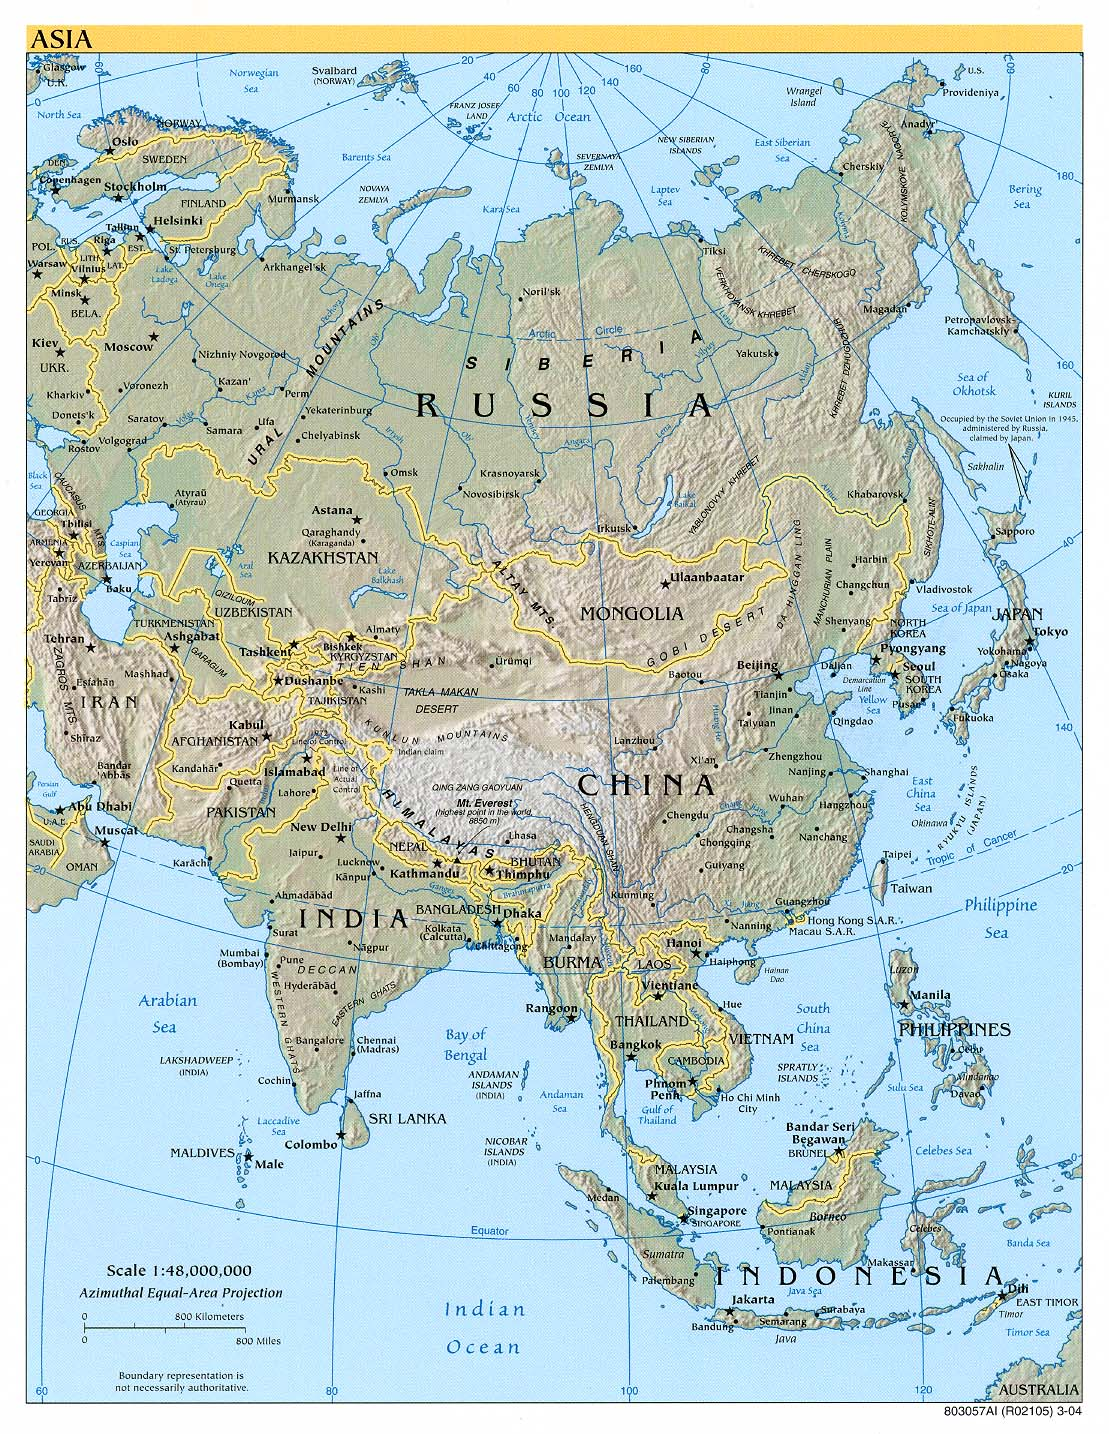 Asia physical map 2004